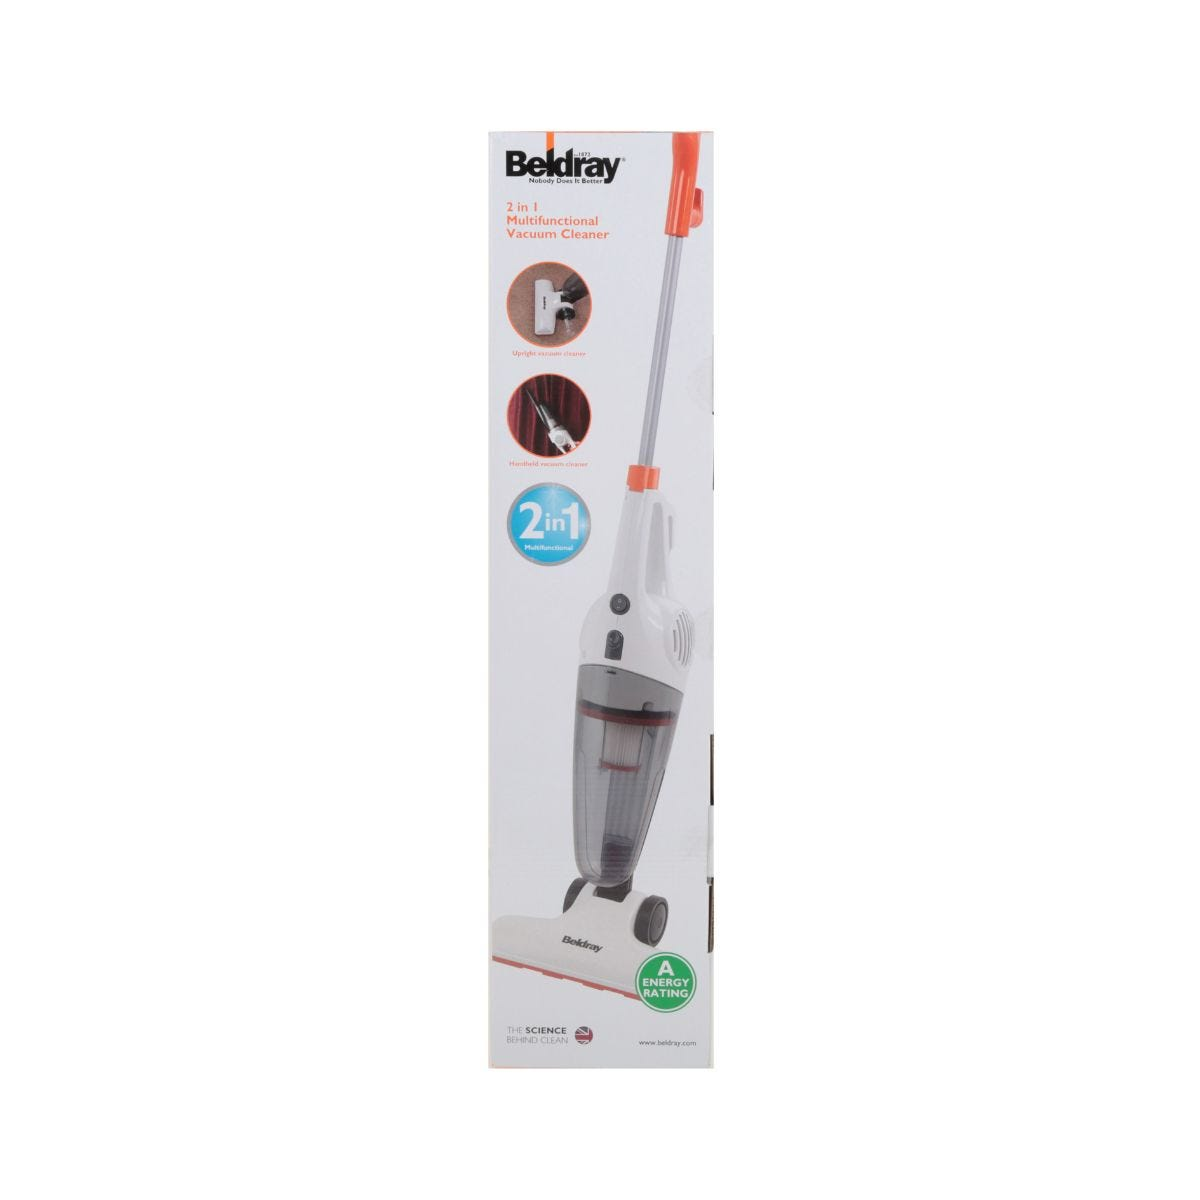 Image of Beldray 2 in 1 Stick Vac, Orange and White